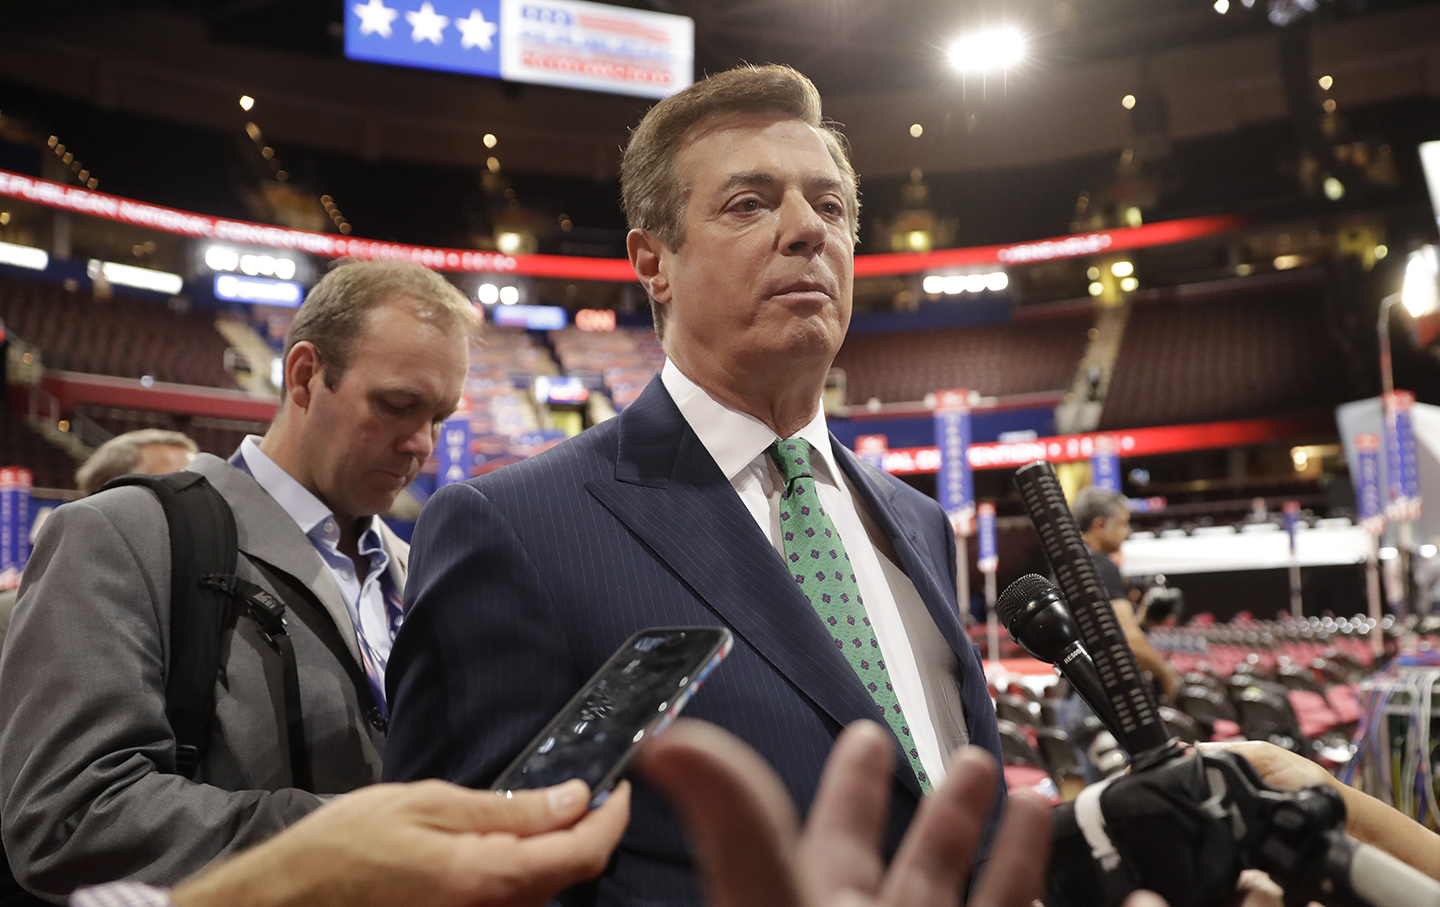 Paul Manafort, Rick Gates